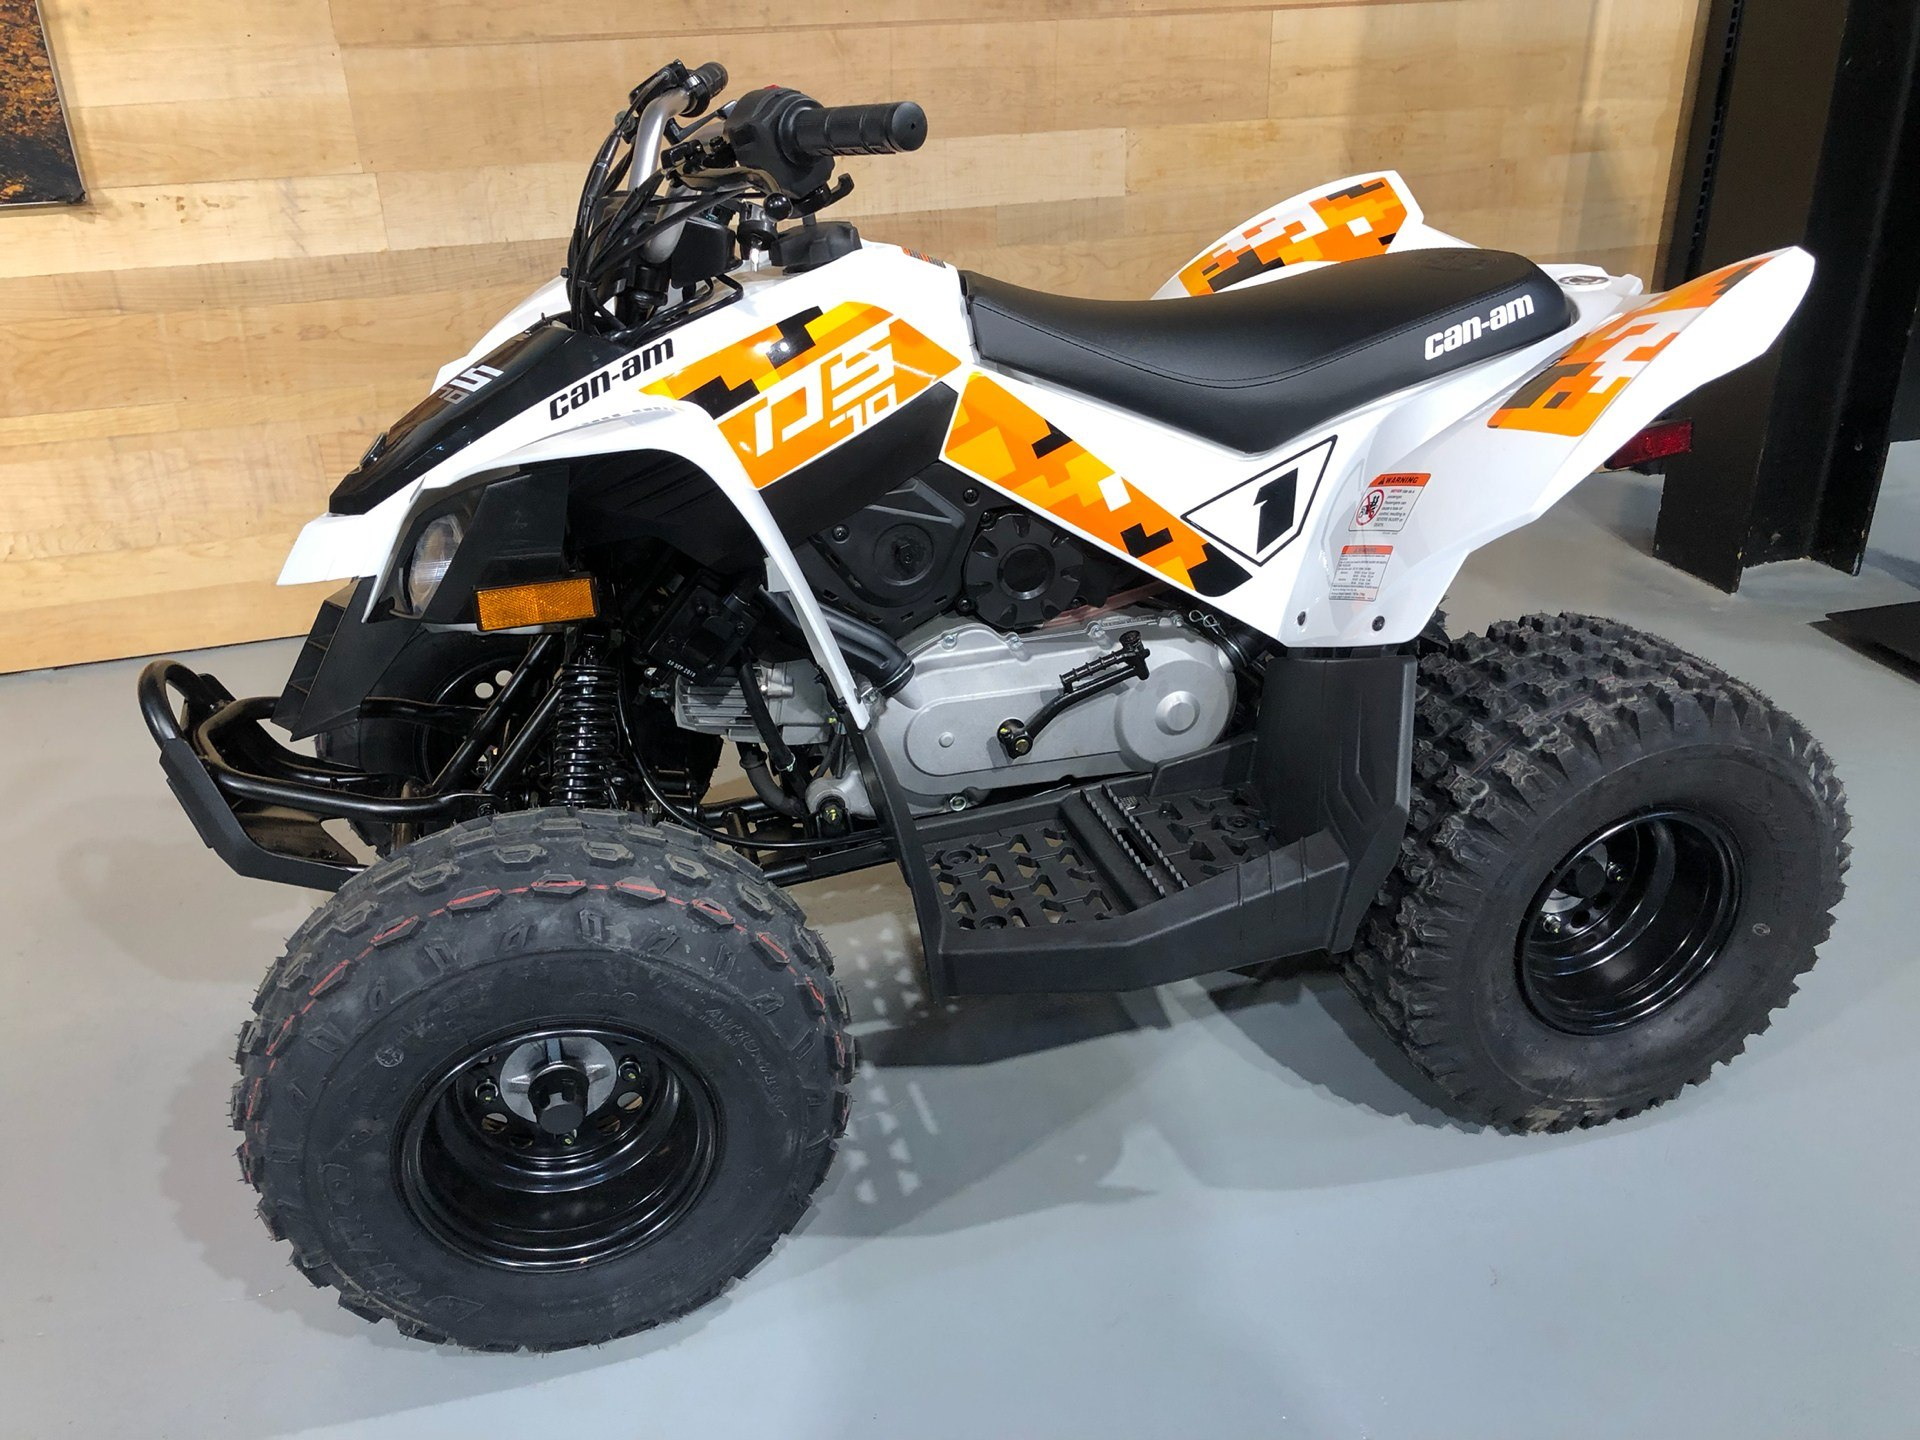 2020 Can-Am DS 70 in Enfield, Connecticut - Photo 4